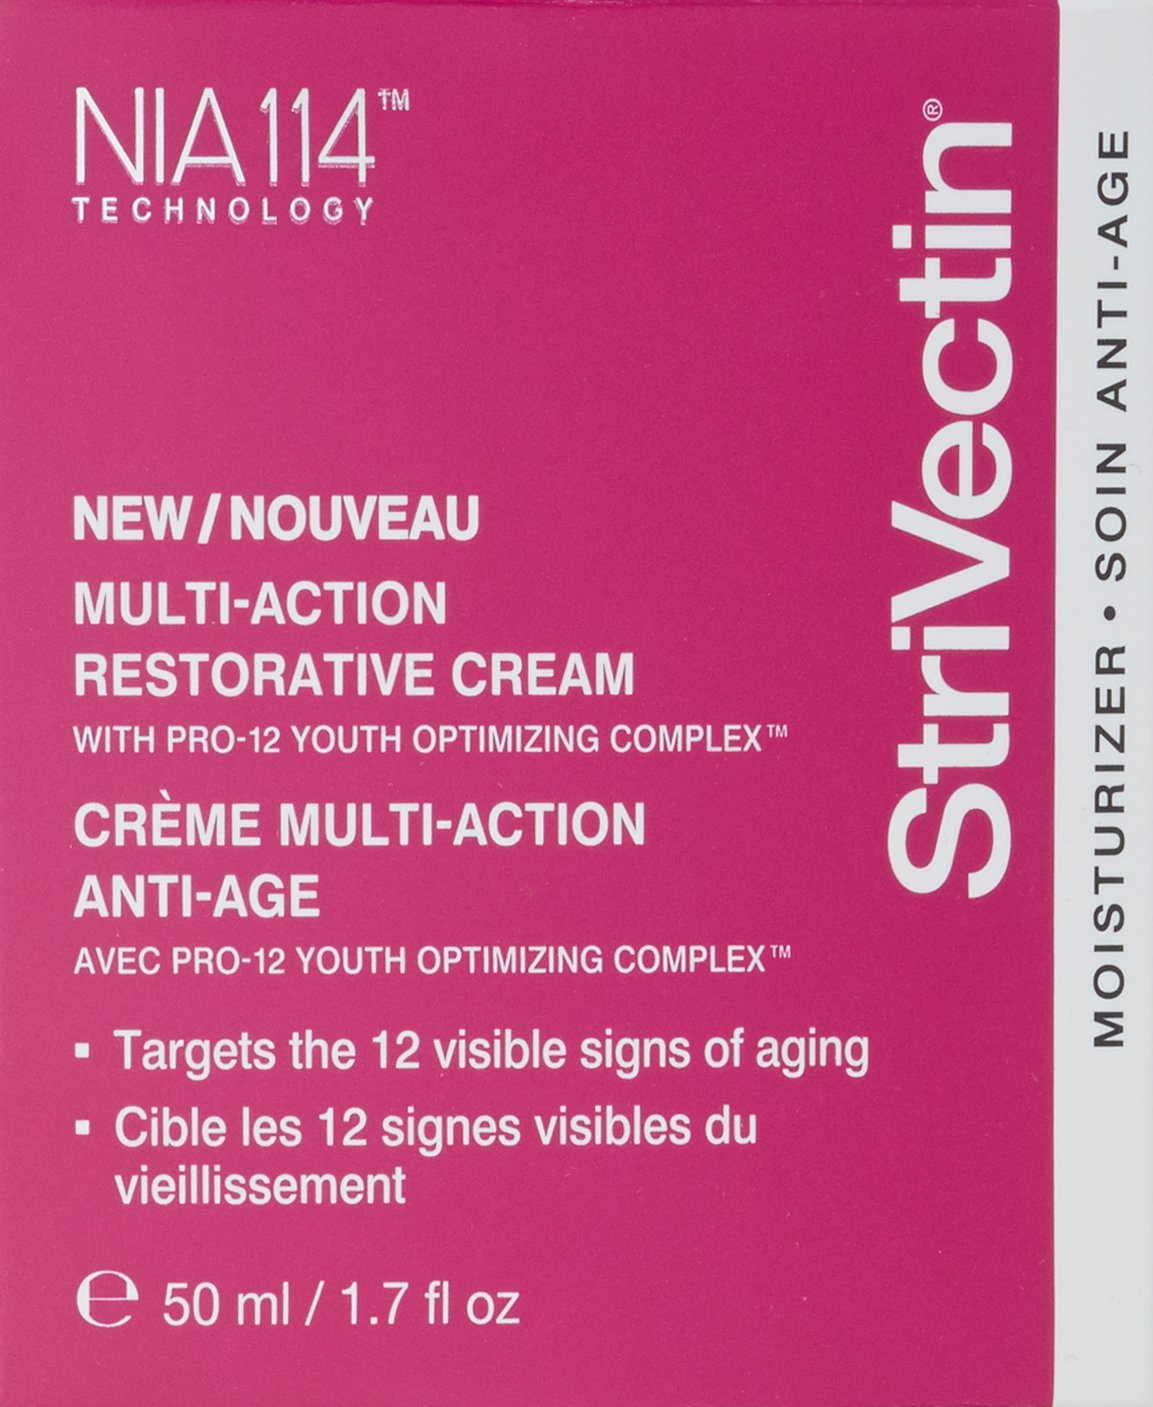 StriVectin Multi-Action Restorative Cream, 1.7 oz.